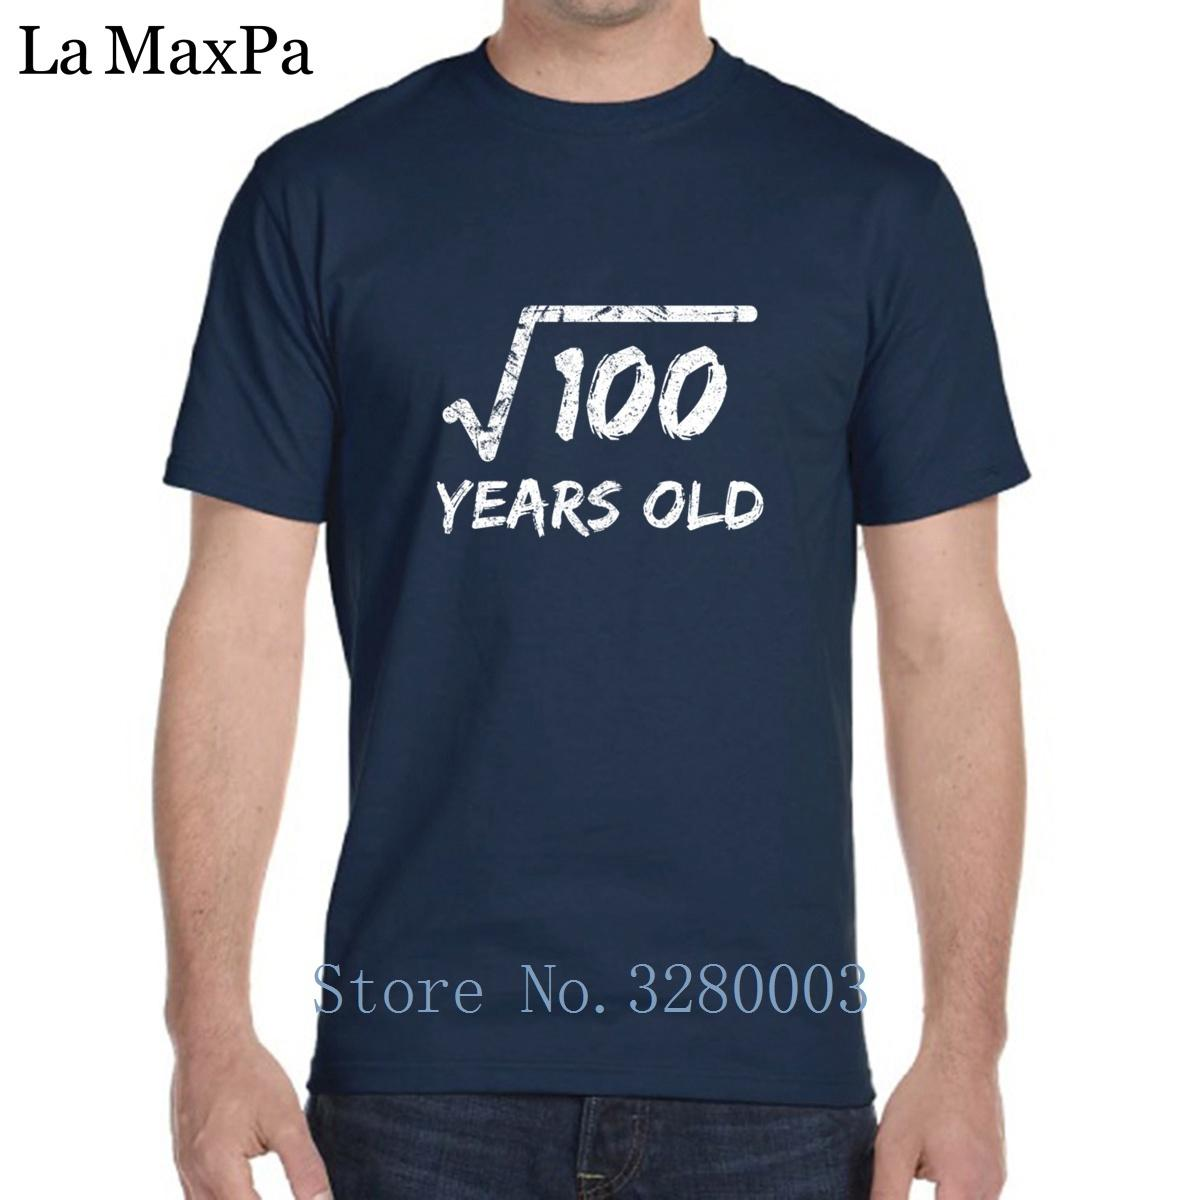 Designs New Style T Shirt For Men Square Root Of 100 10 Years Old 10th Birthday Summer Mens Tee Novelty O Neck Online Buy Joke